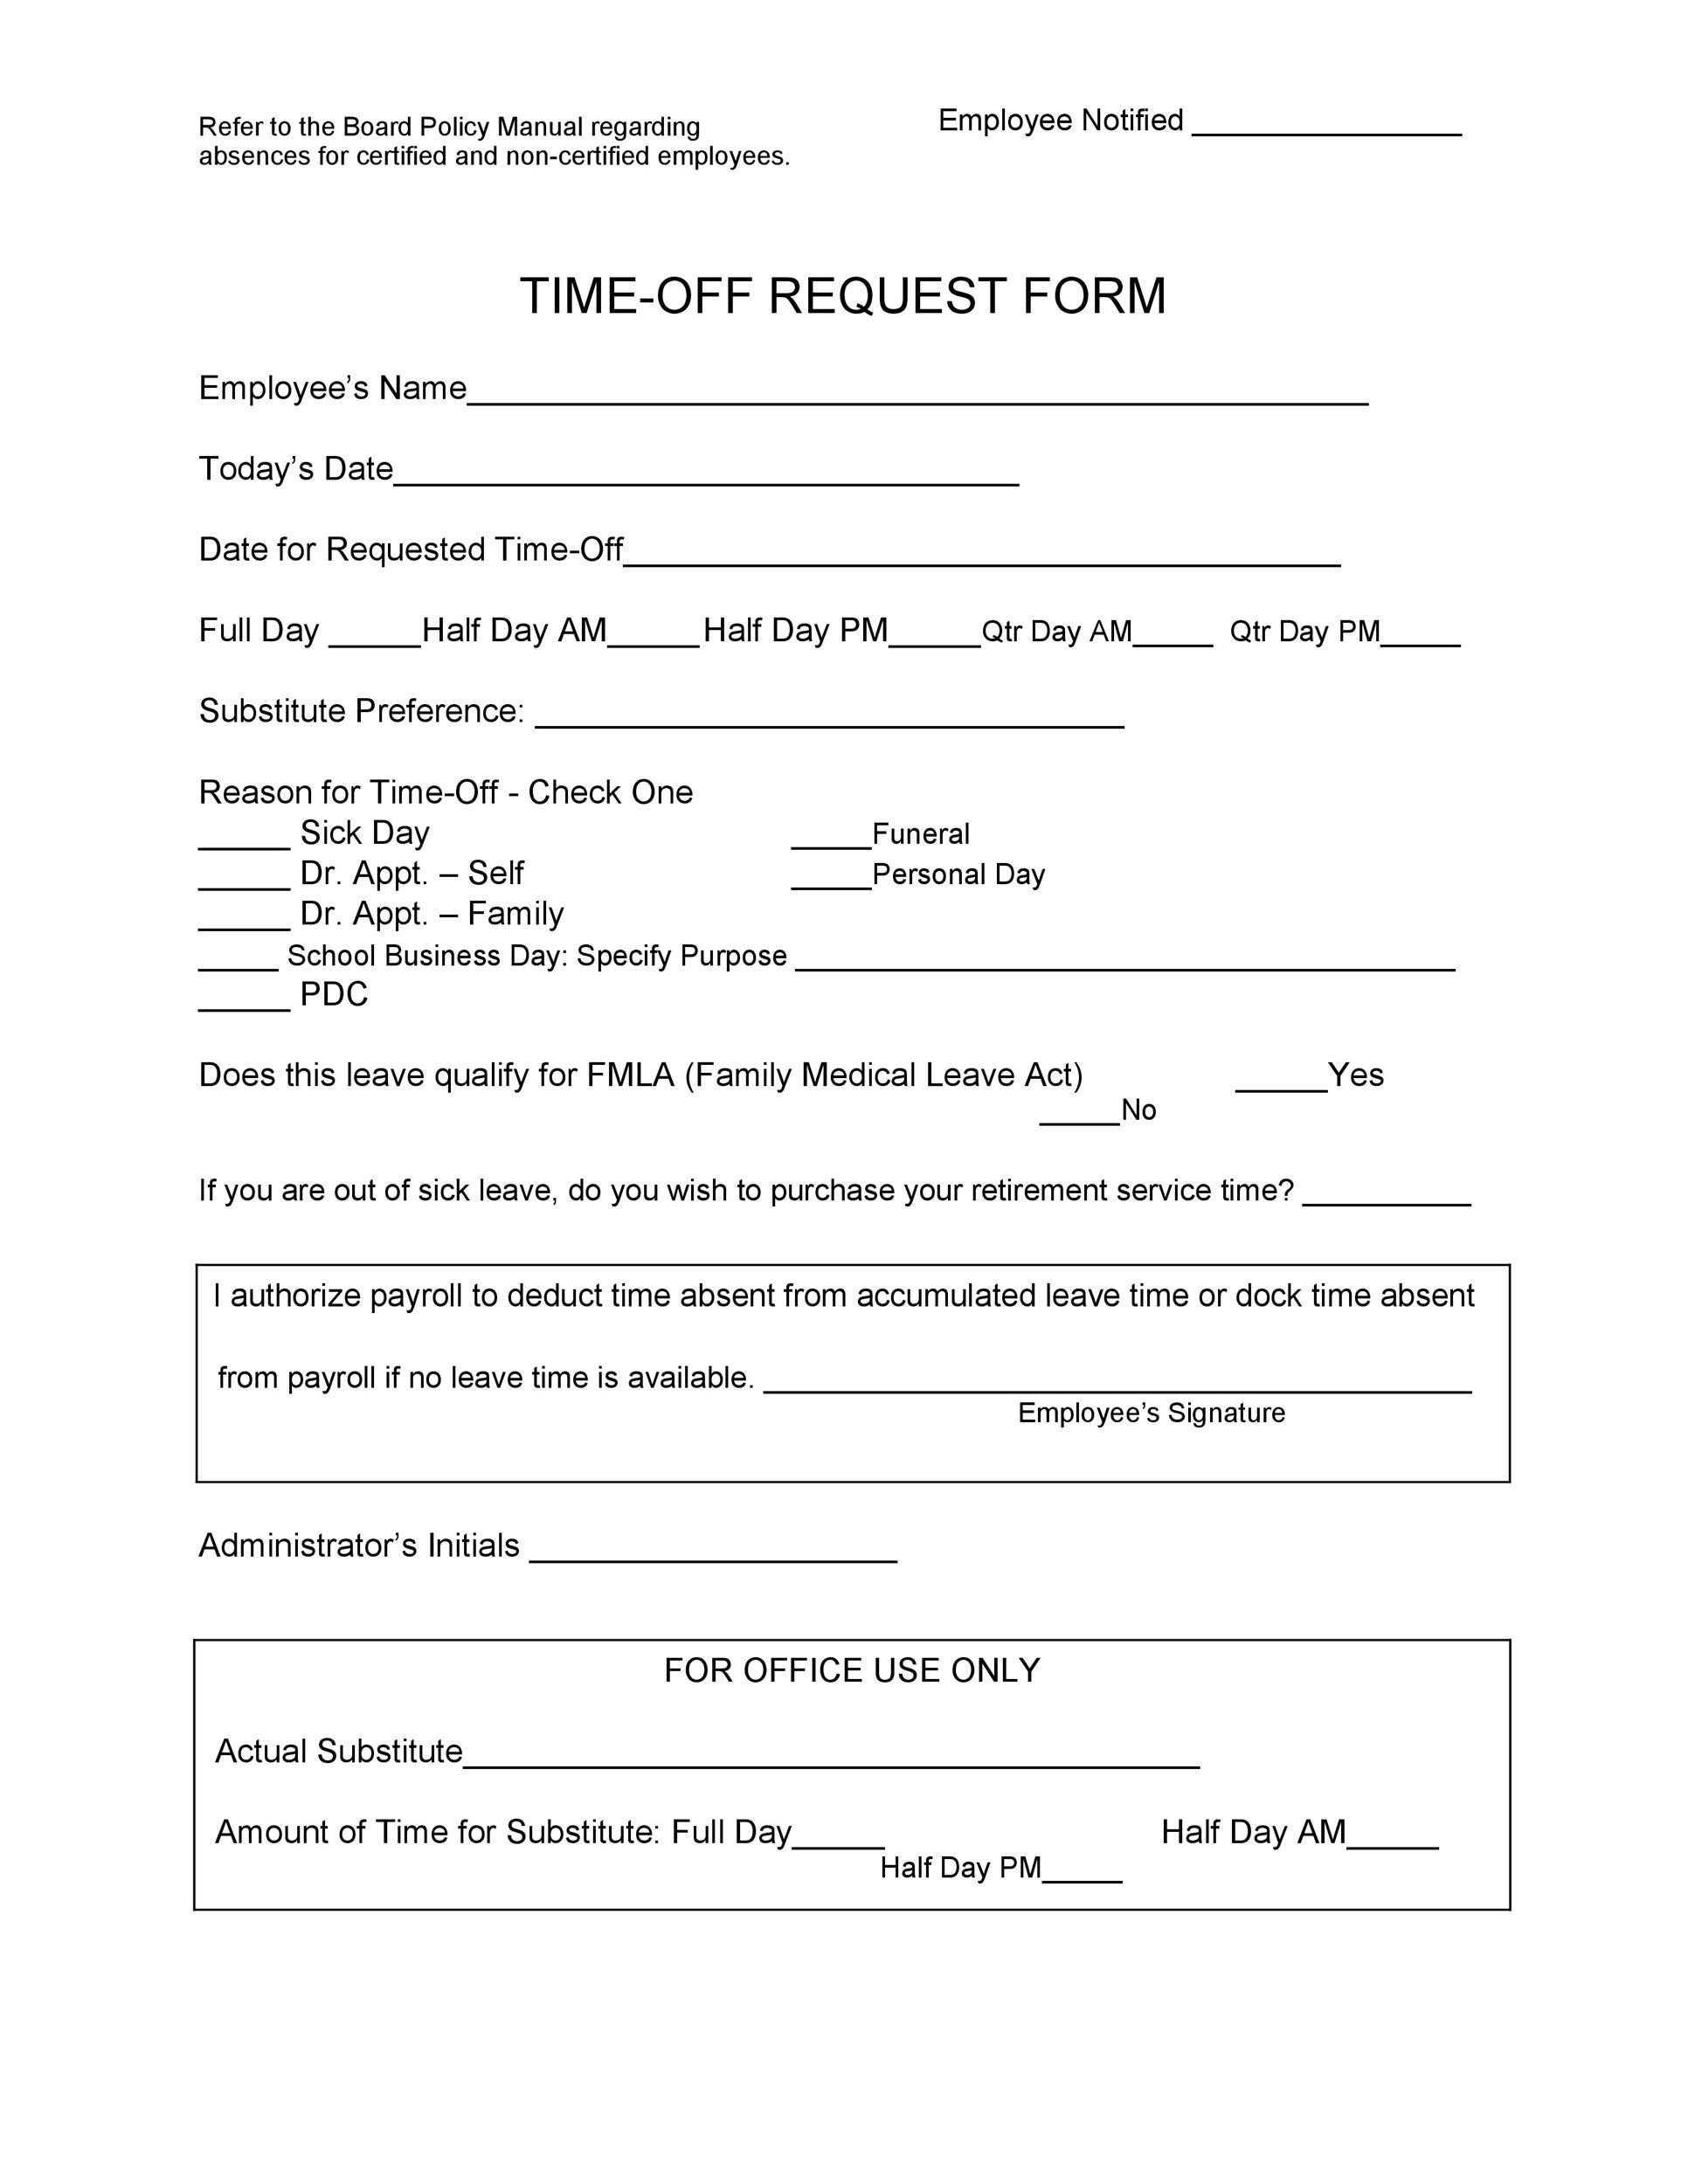 40 Effective Time Off Request Forms Templates ᐅ Templatelab